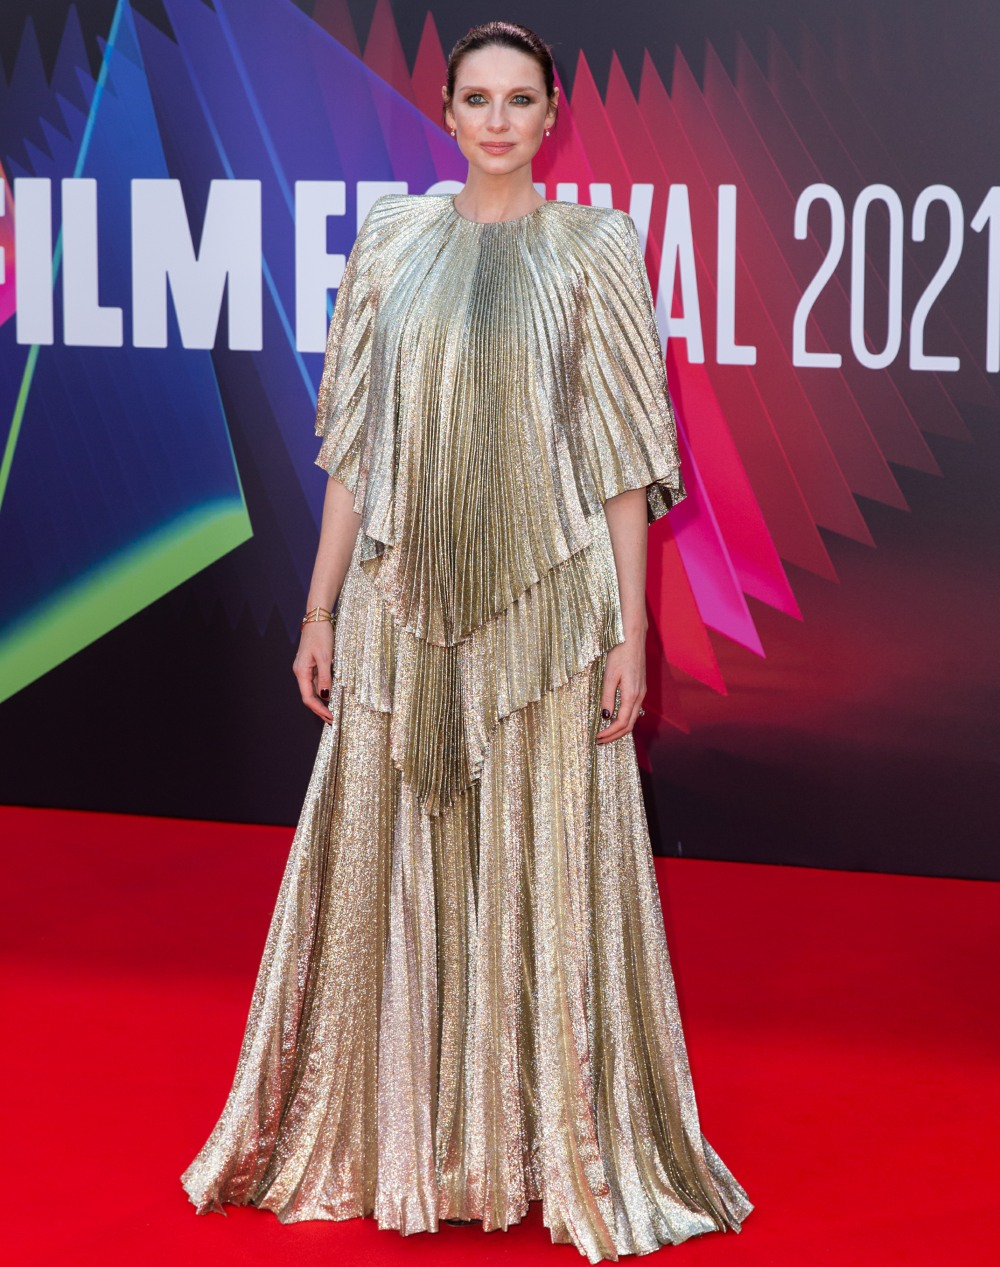 The BFI 65th London Film Festival European Premiere of 'Belfast' held at the Royal Festival Hall